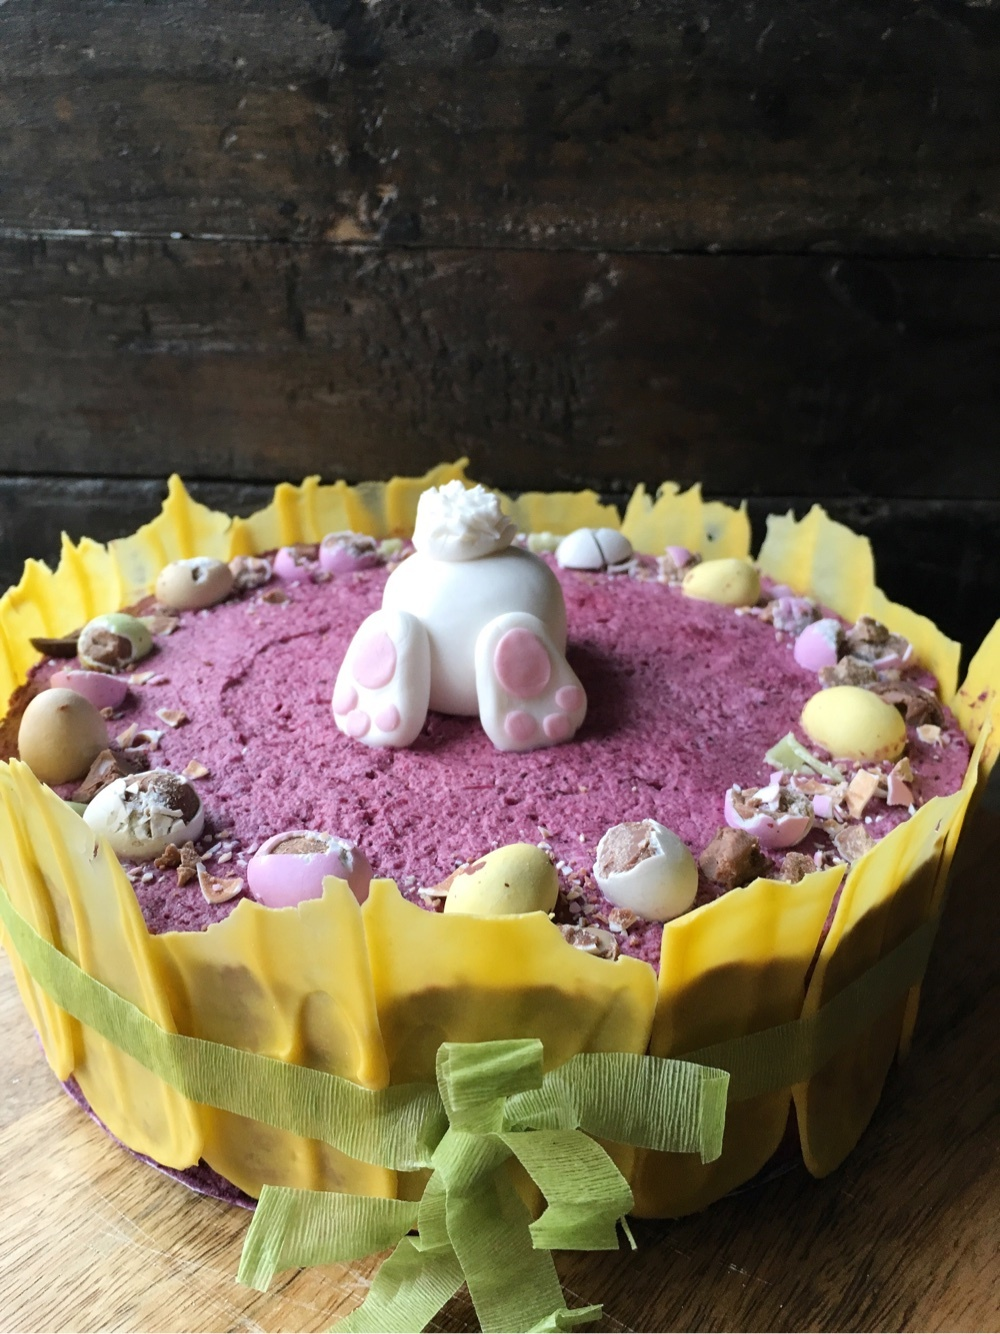 Blueberry mousse cake for Easter ~ Blåbärsmousse tårta till Påsk